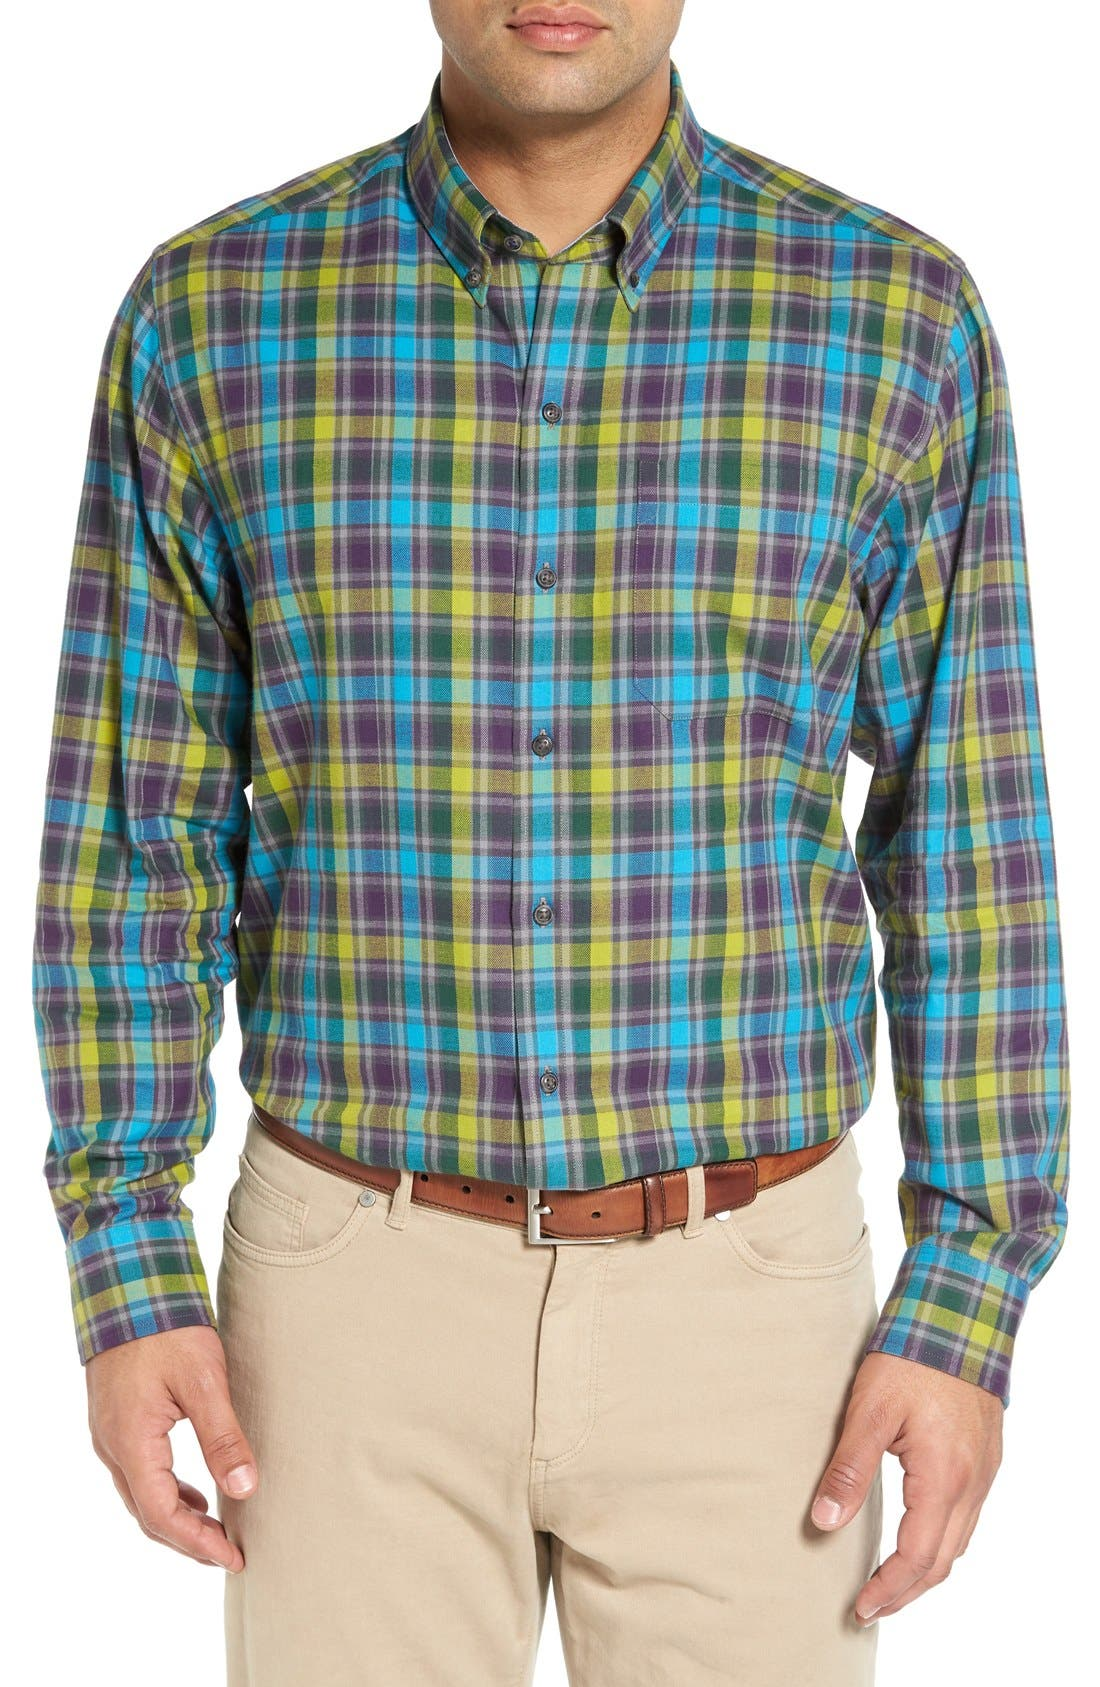 Main Image - Cutter & Buck 'Timber' Plaid Cotton Twill Sport Shirt (Big & Tall)